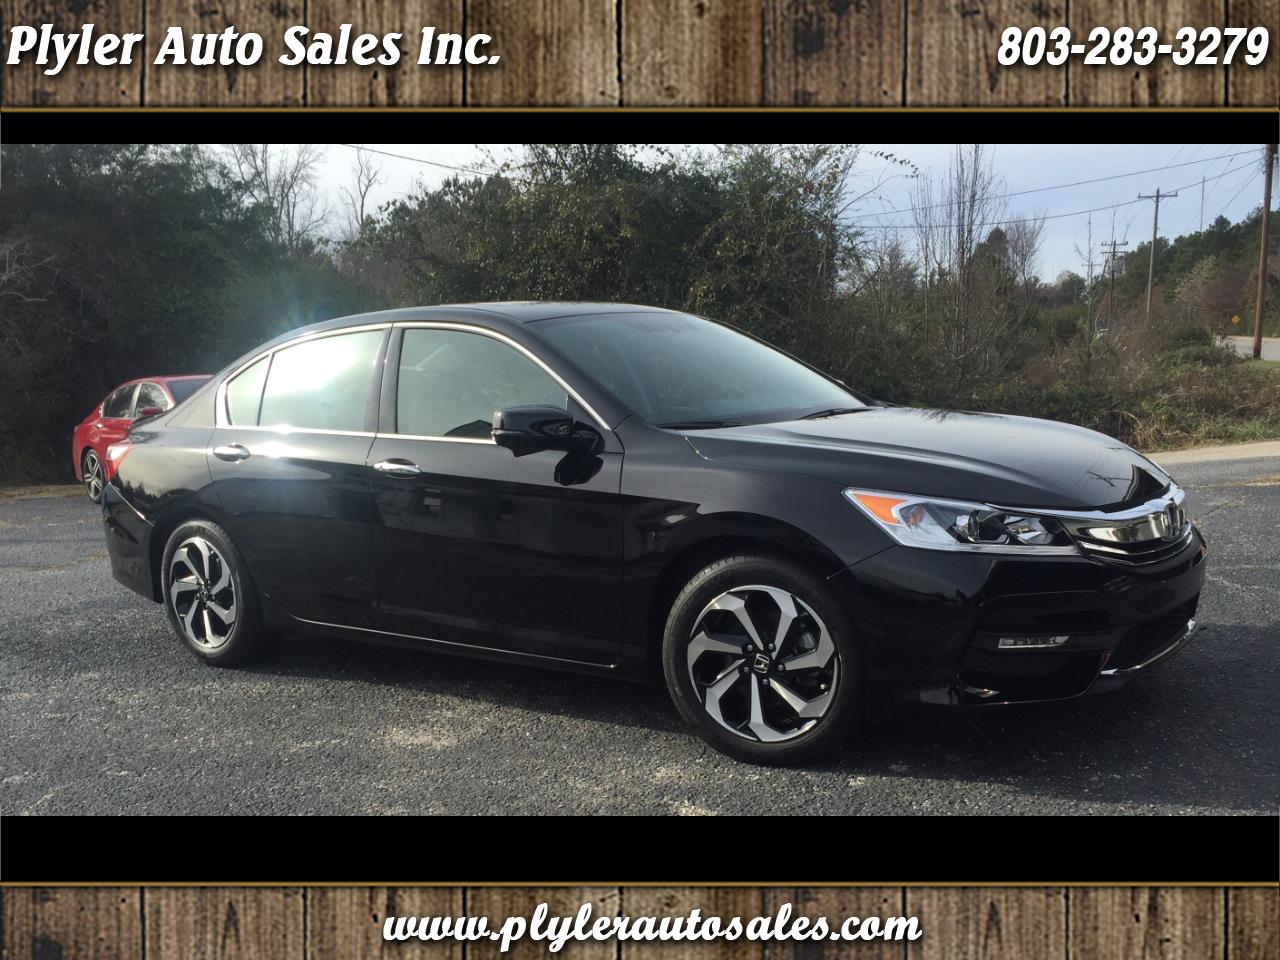 2016 Honda Accord EX-L Sedan V6 6-Spd AT